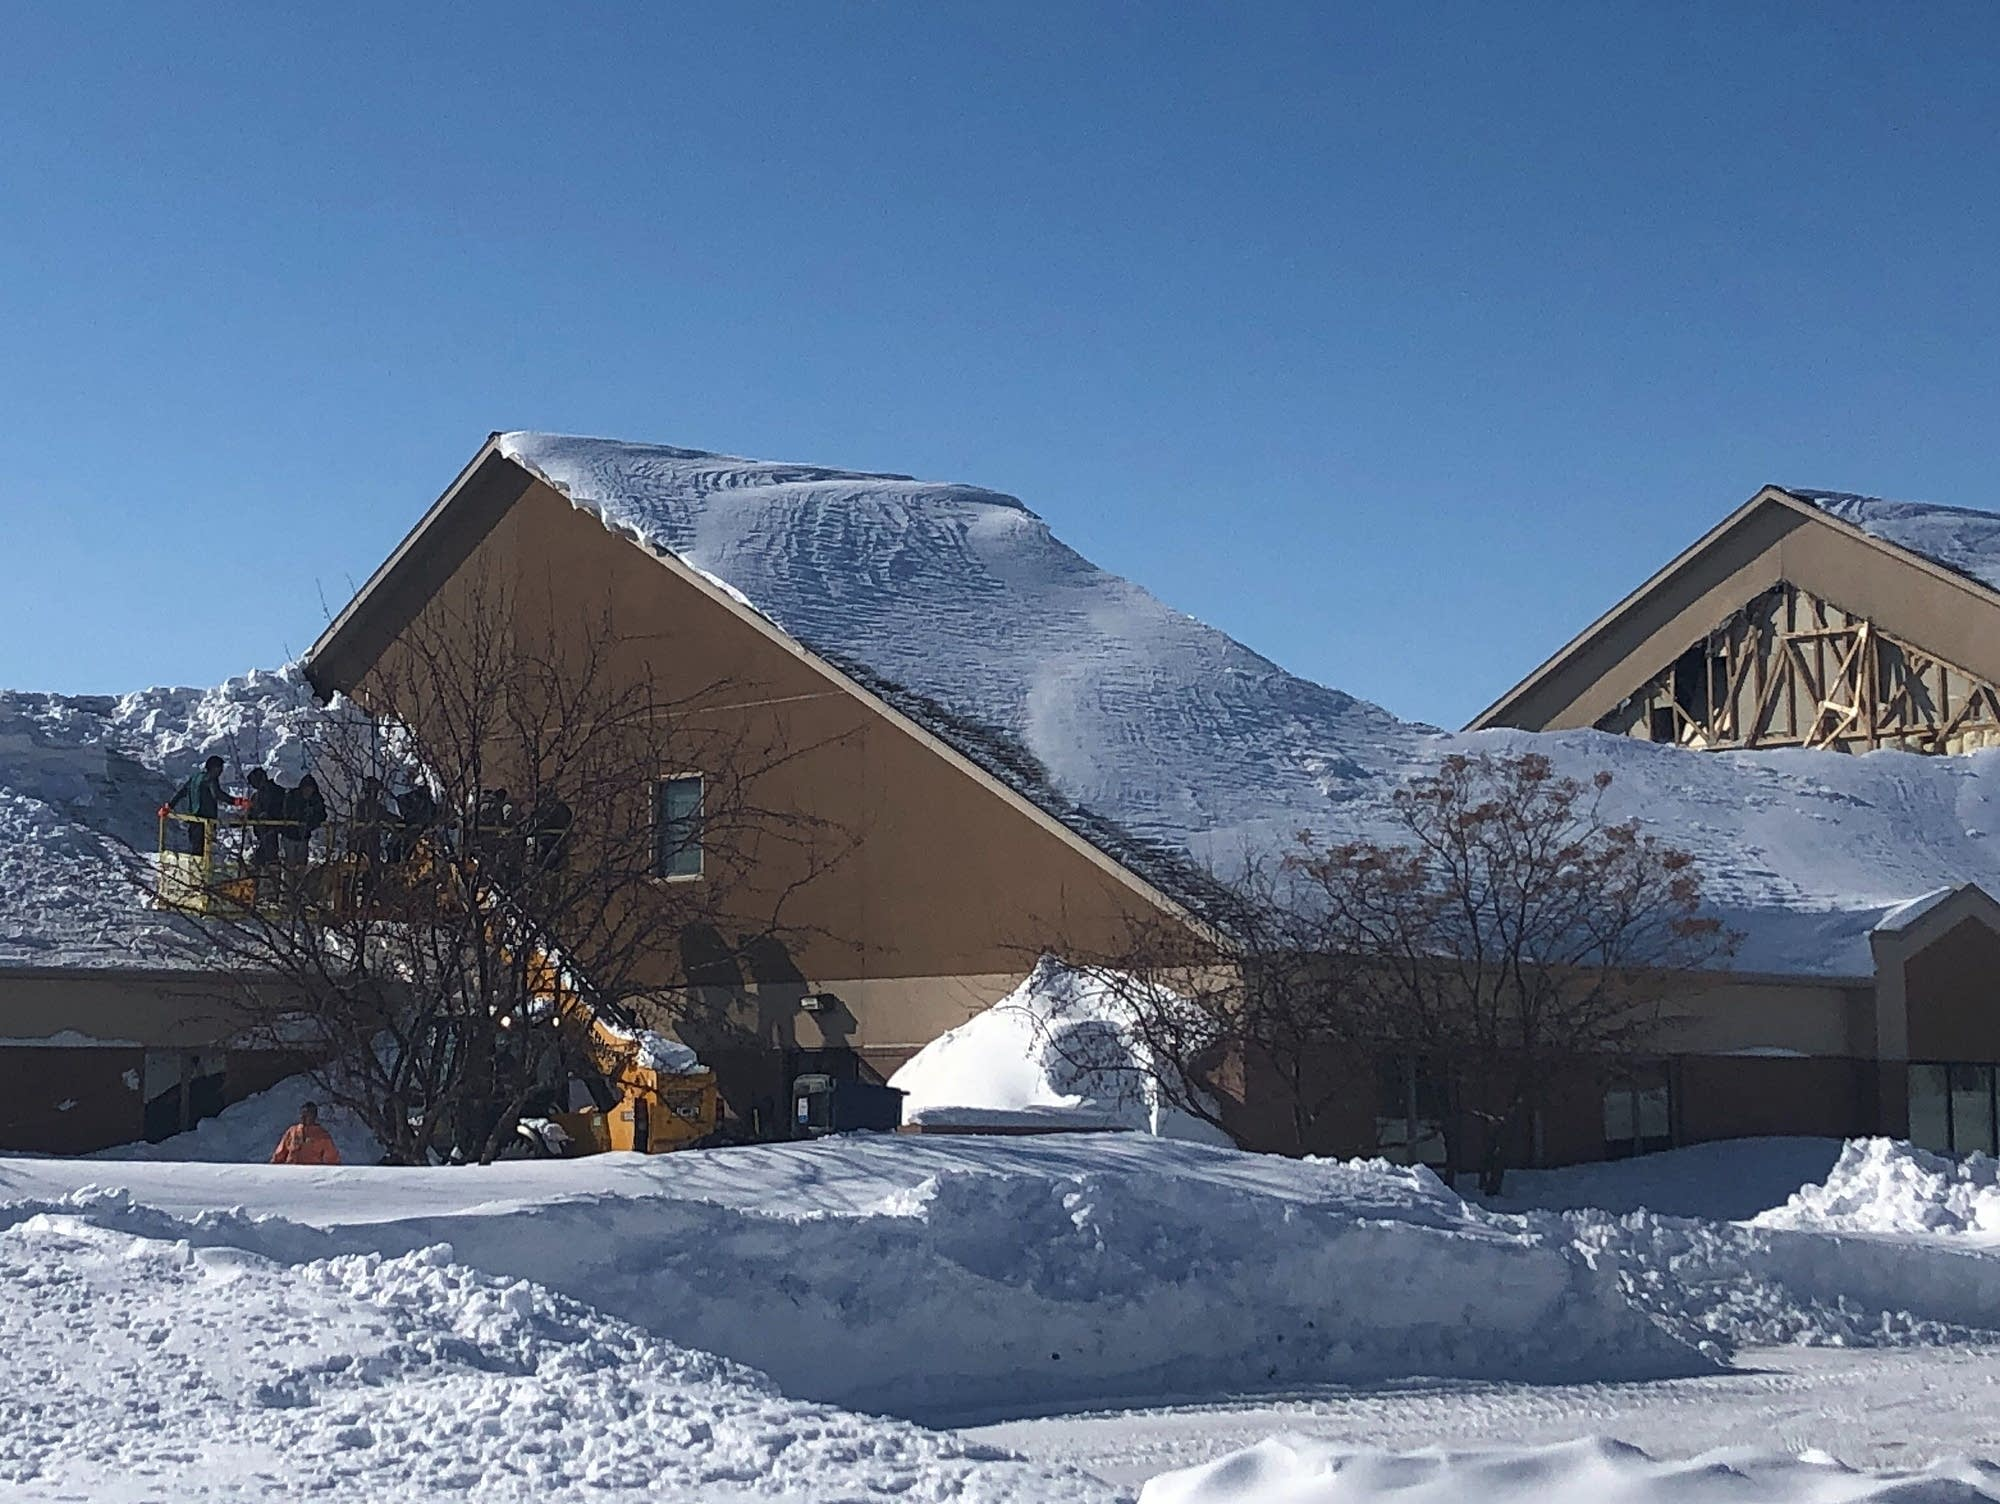 Heavy Wet Snow Causing Roofs To Collapse In Minnesota